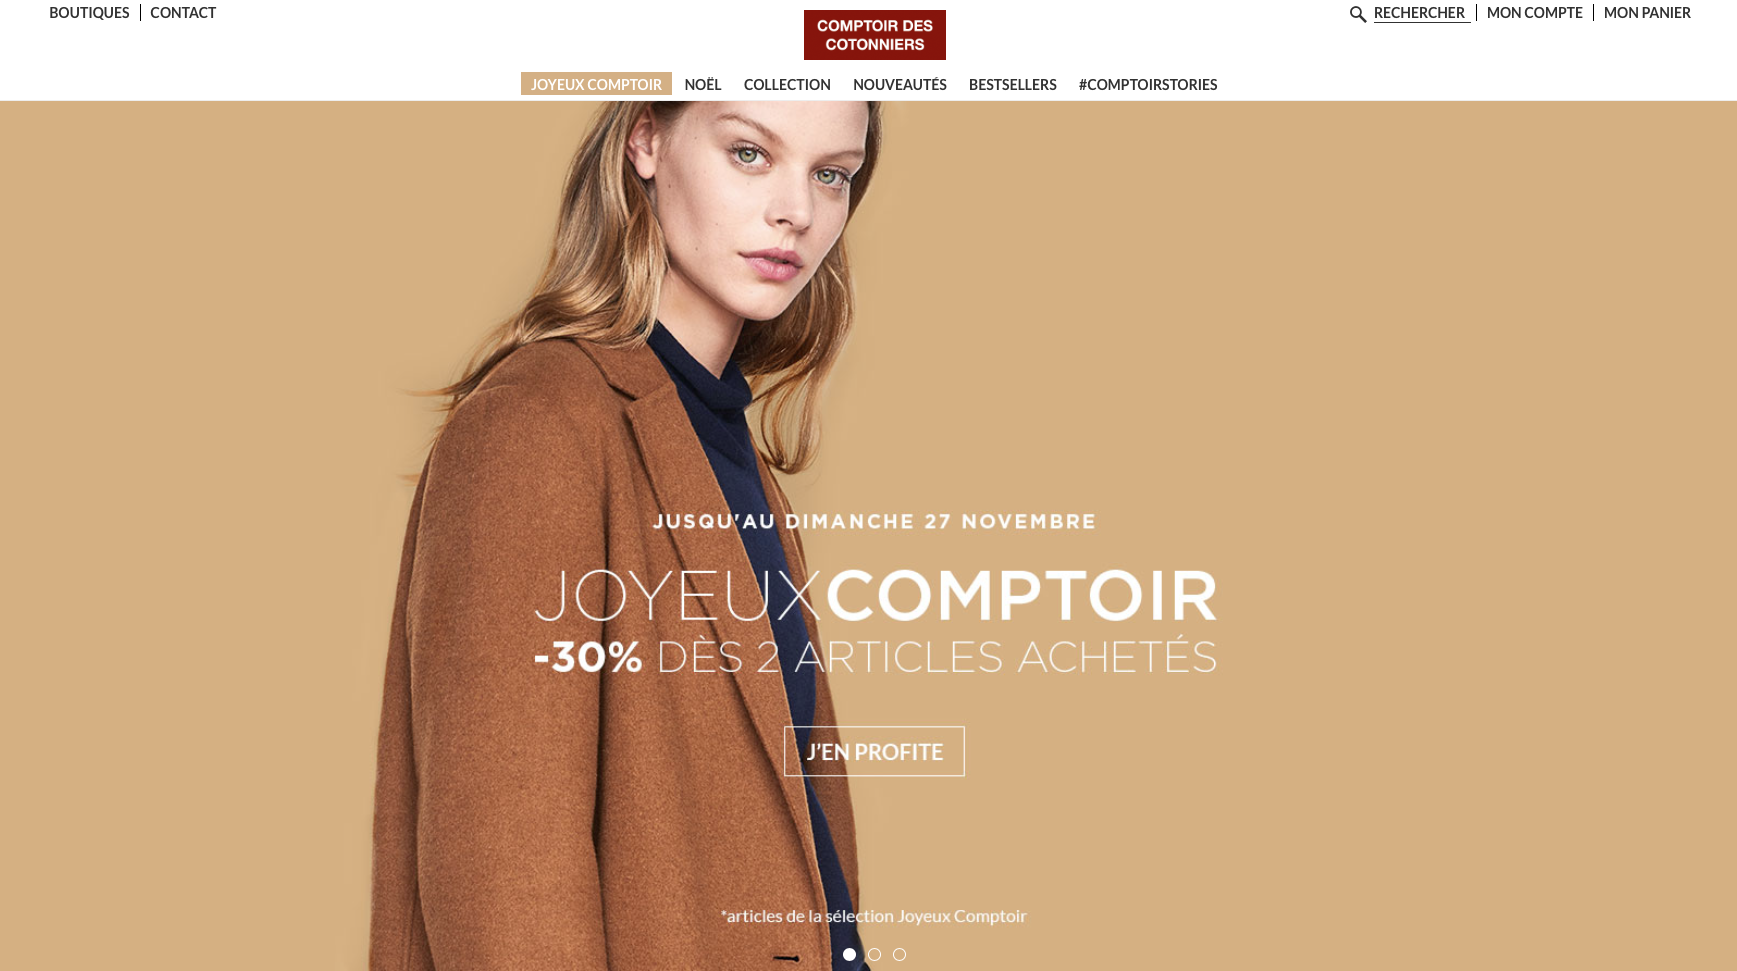 Traduction lingerie Comptoir des Cotonniers